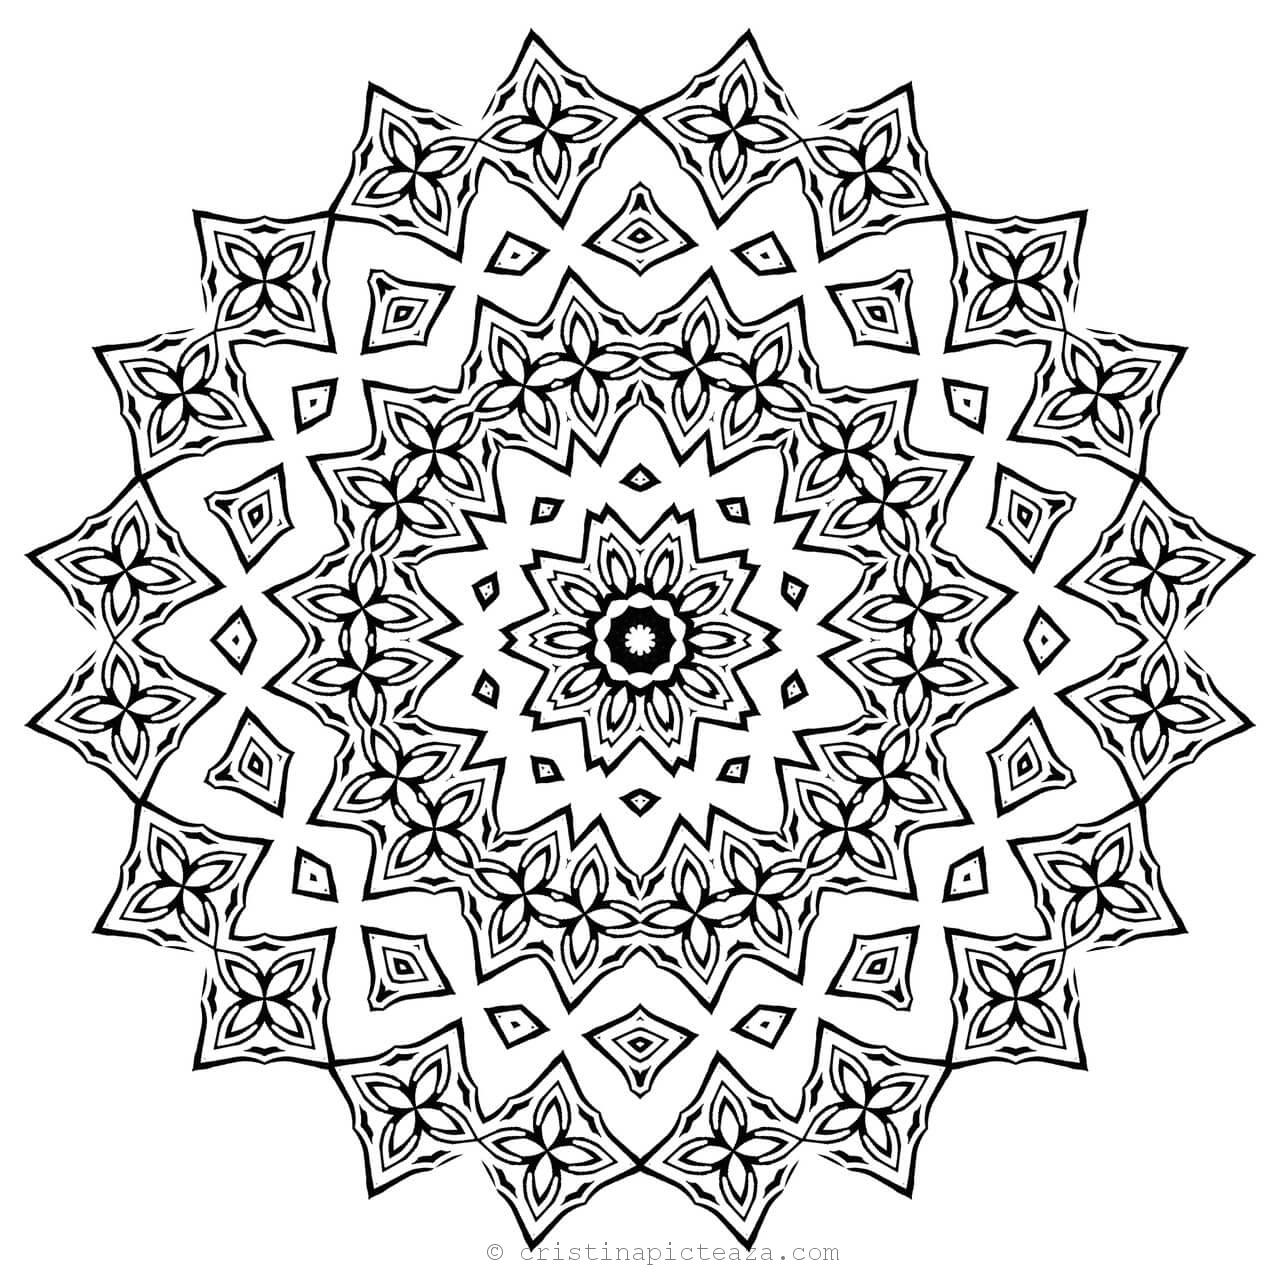 mandala adult coloring pages download the full size mandala on the right to print and mandala adult coloring pages